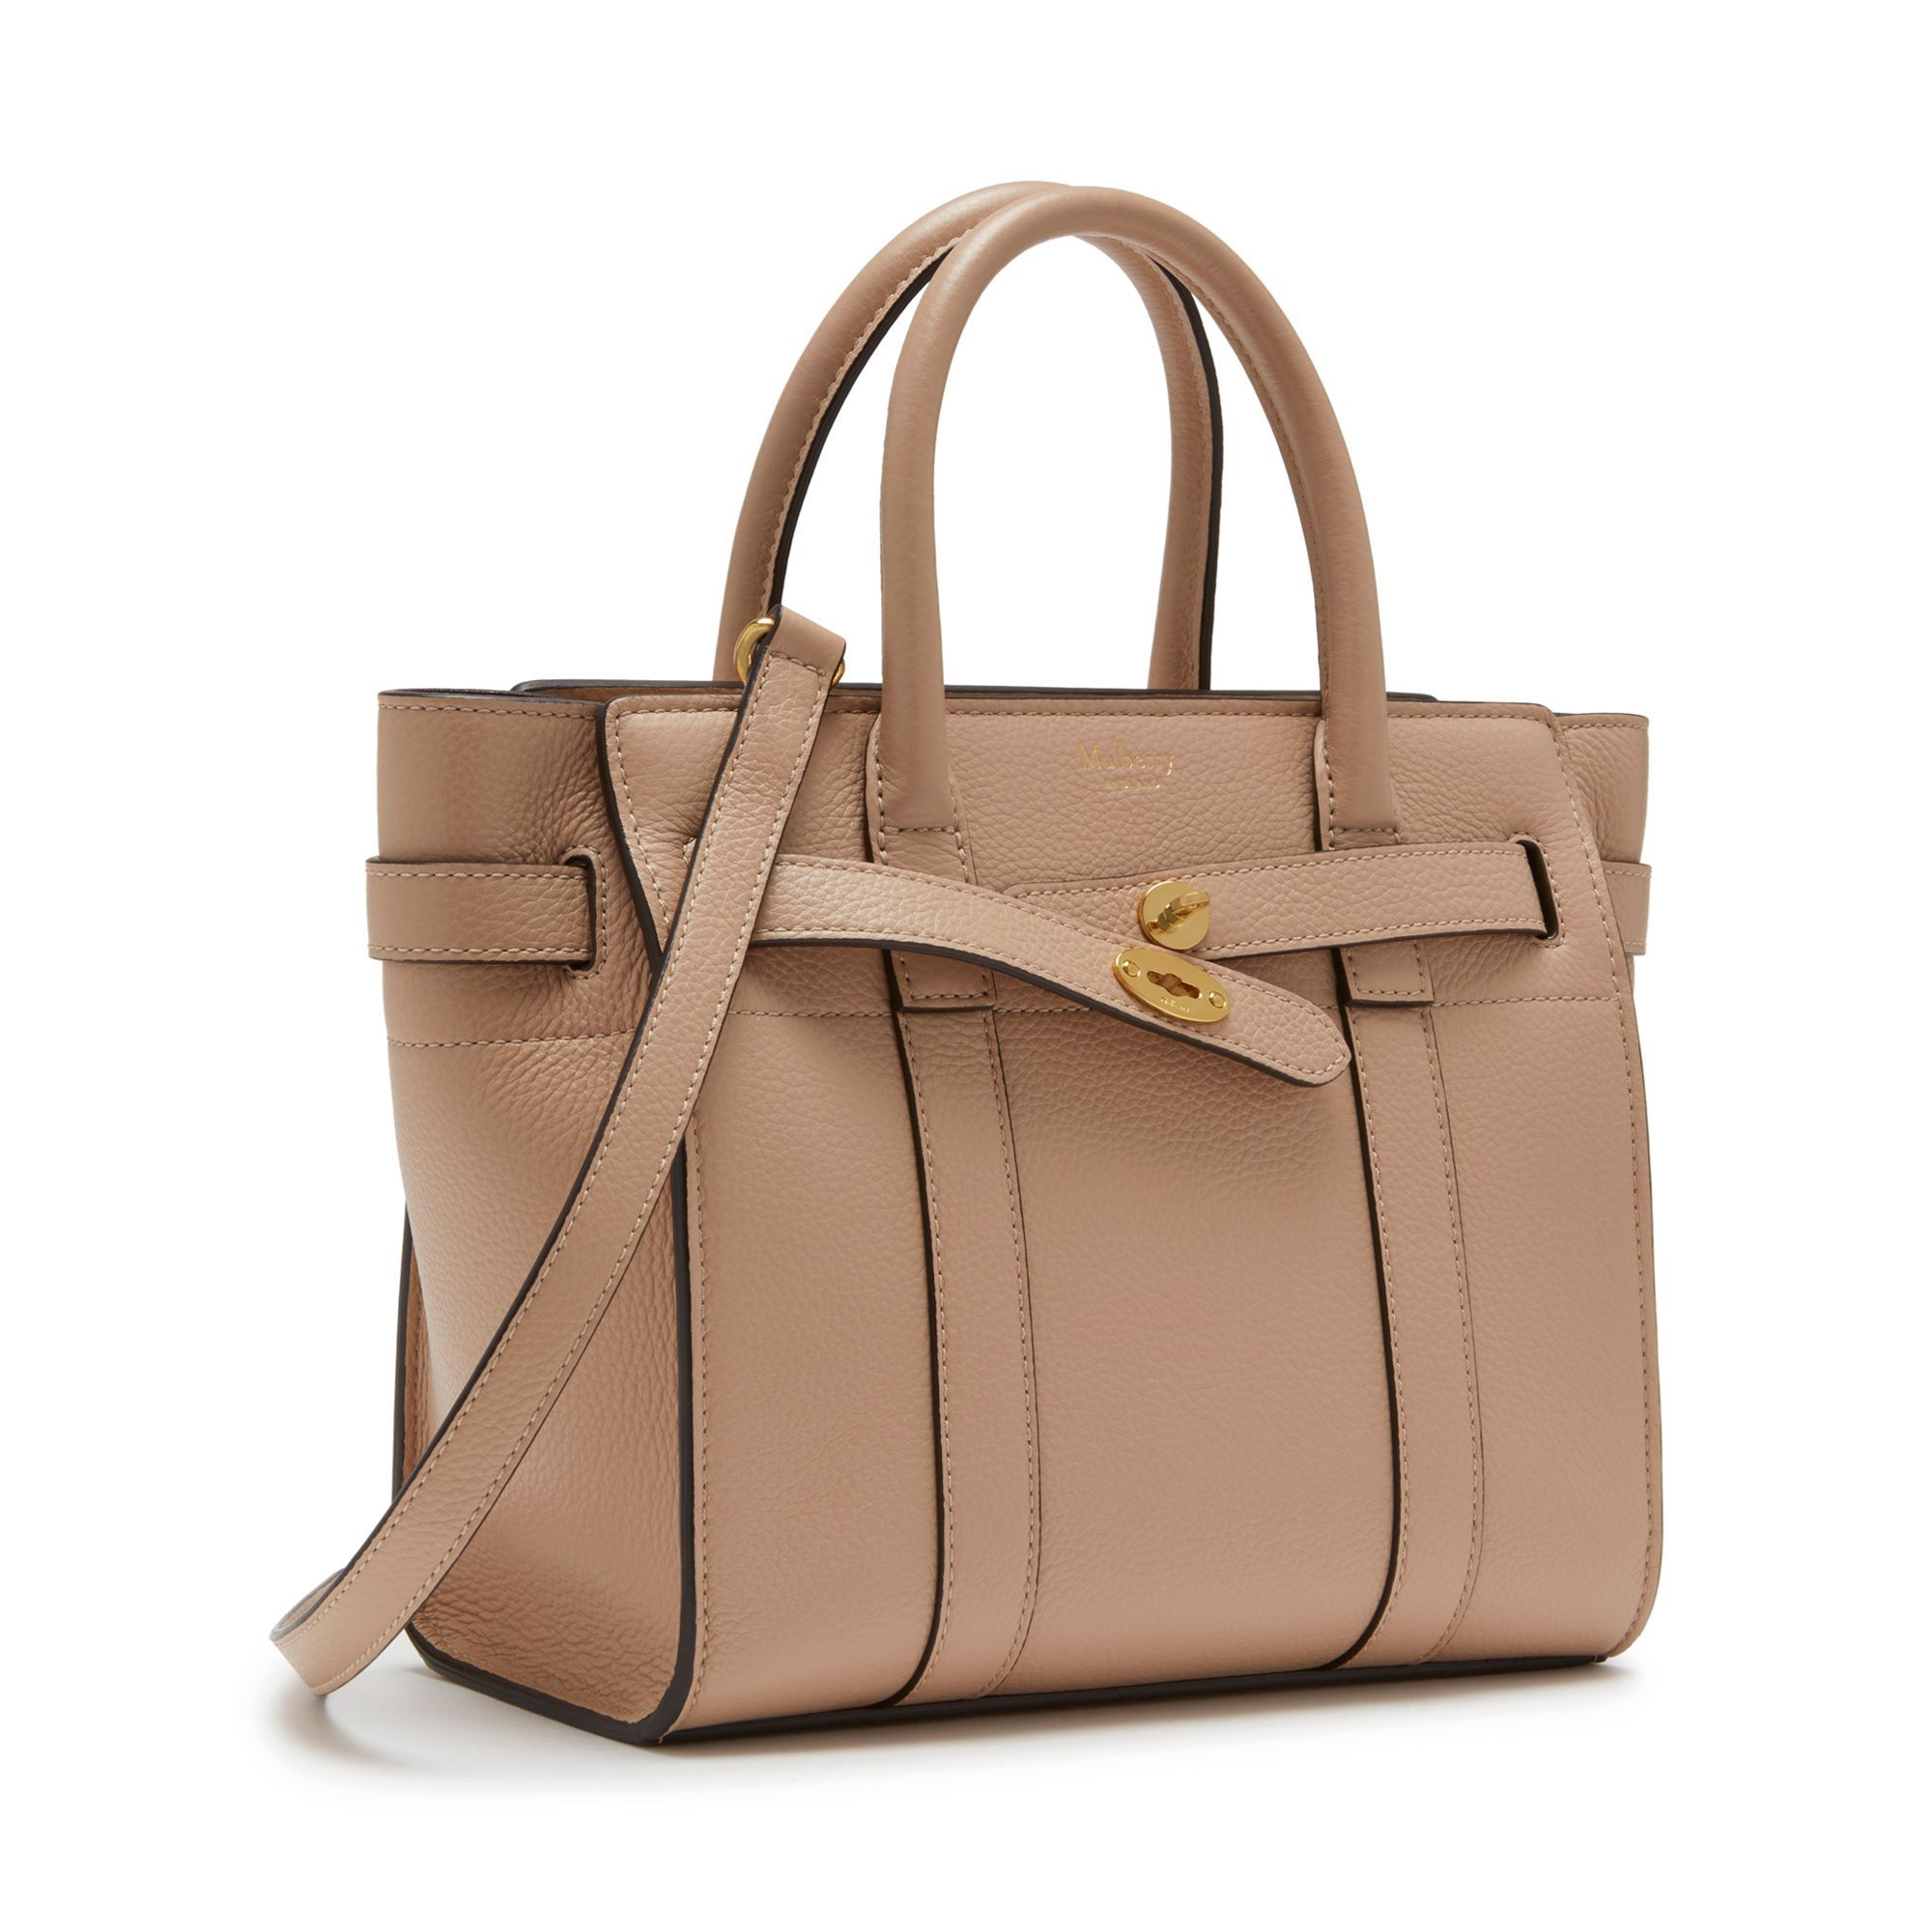 ba389dd42969 Shop the Rosewater Leather Mini Zipped Bayswater on Mulberry.com. A new  arrival for